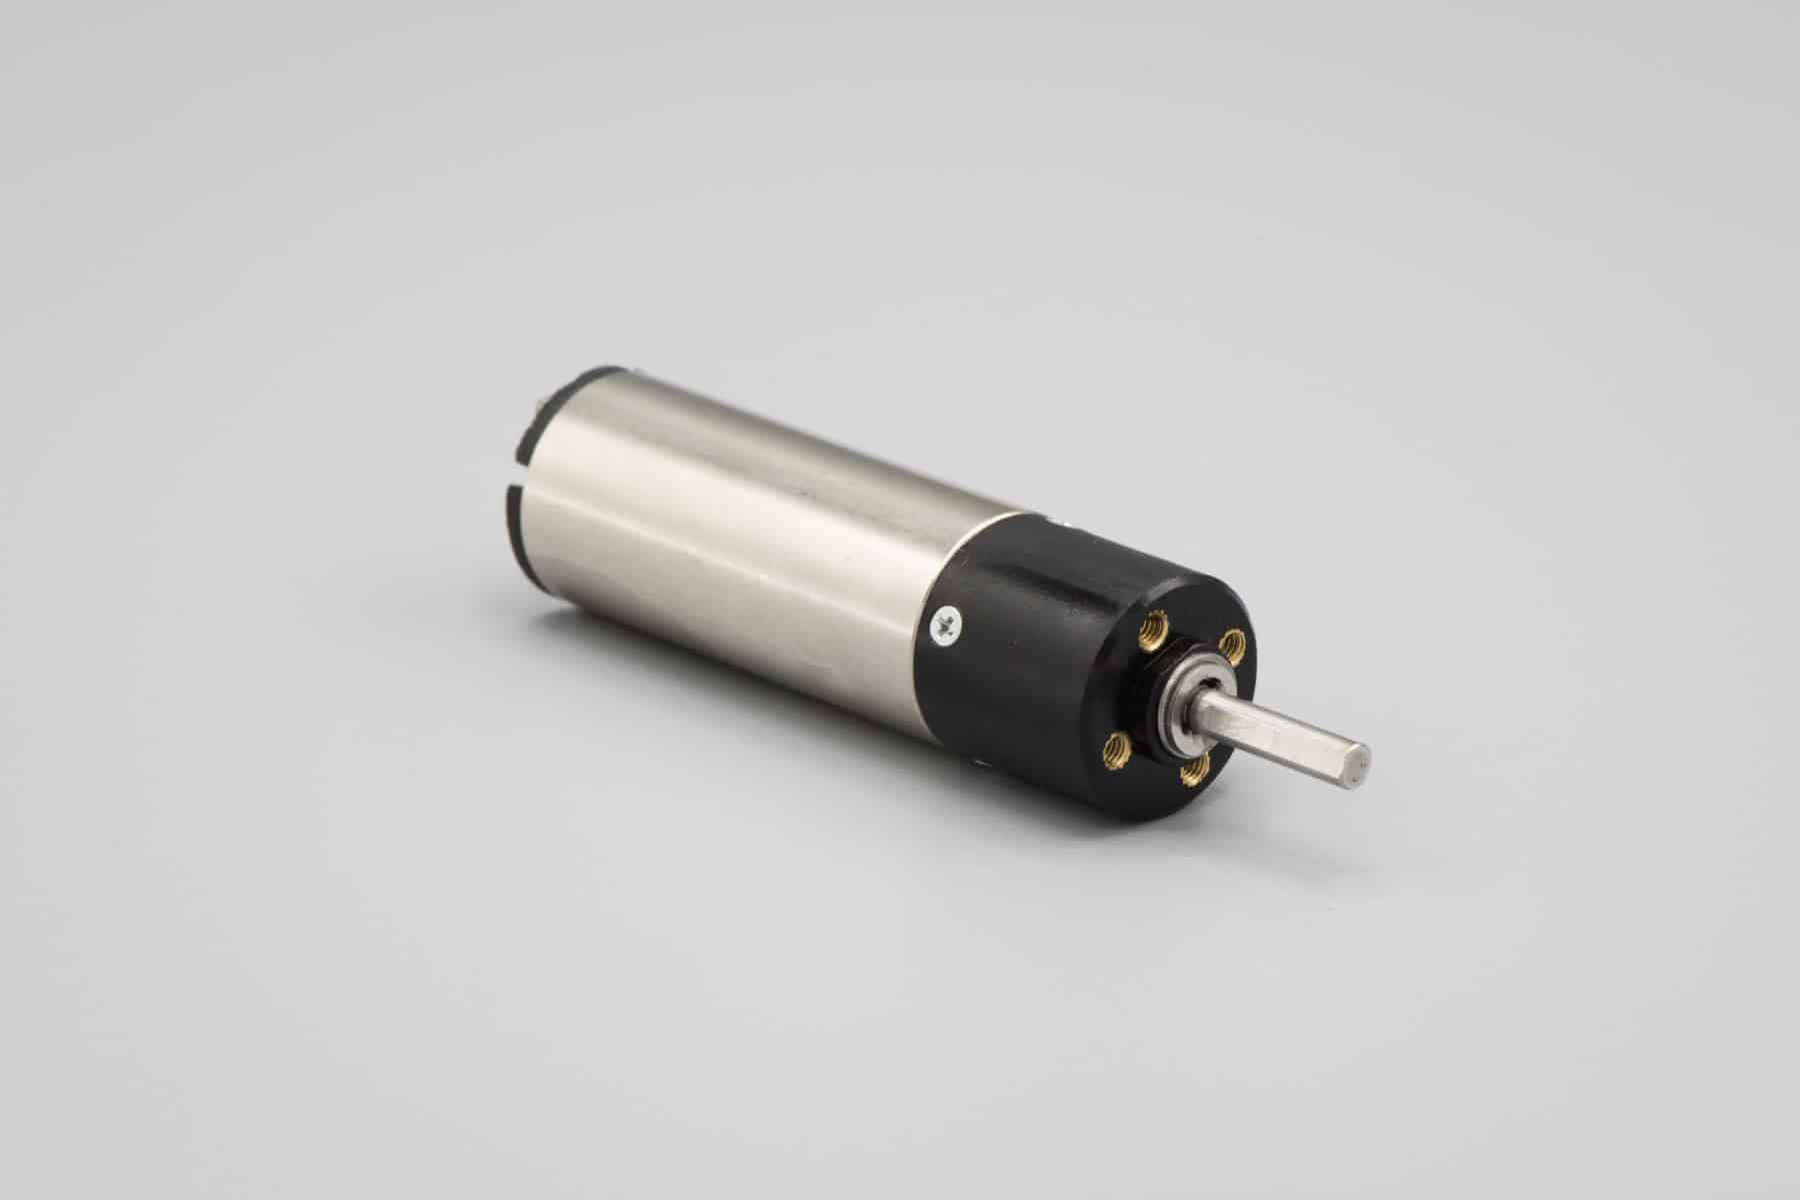 7.4 DC Coreless Brushed Motor - Side View